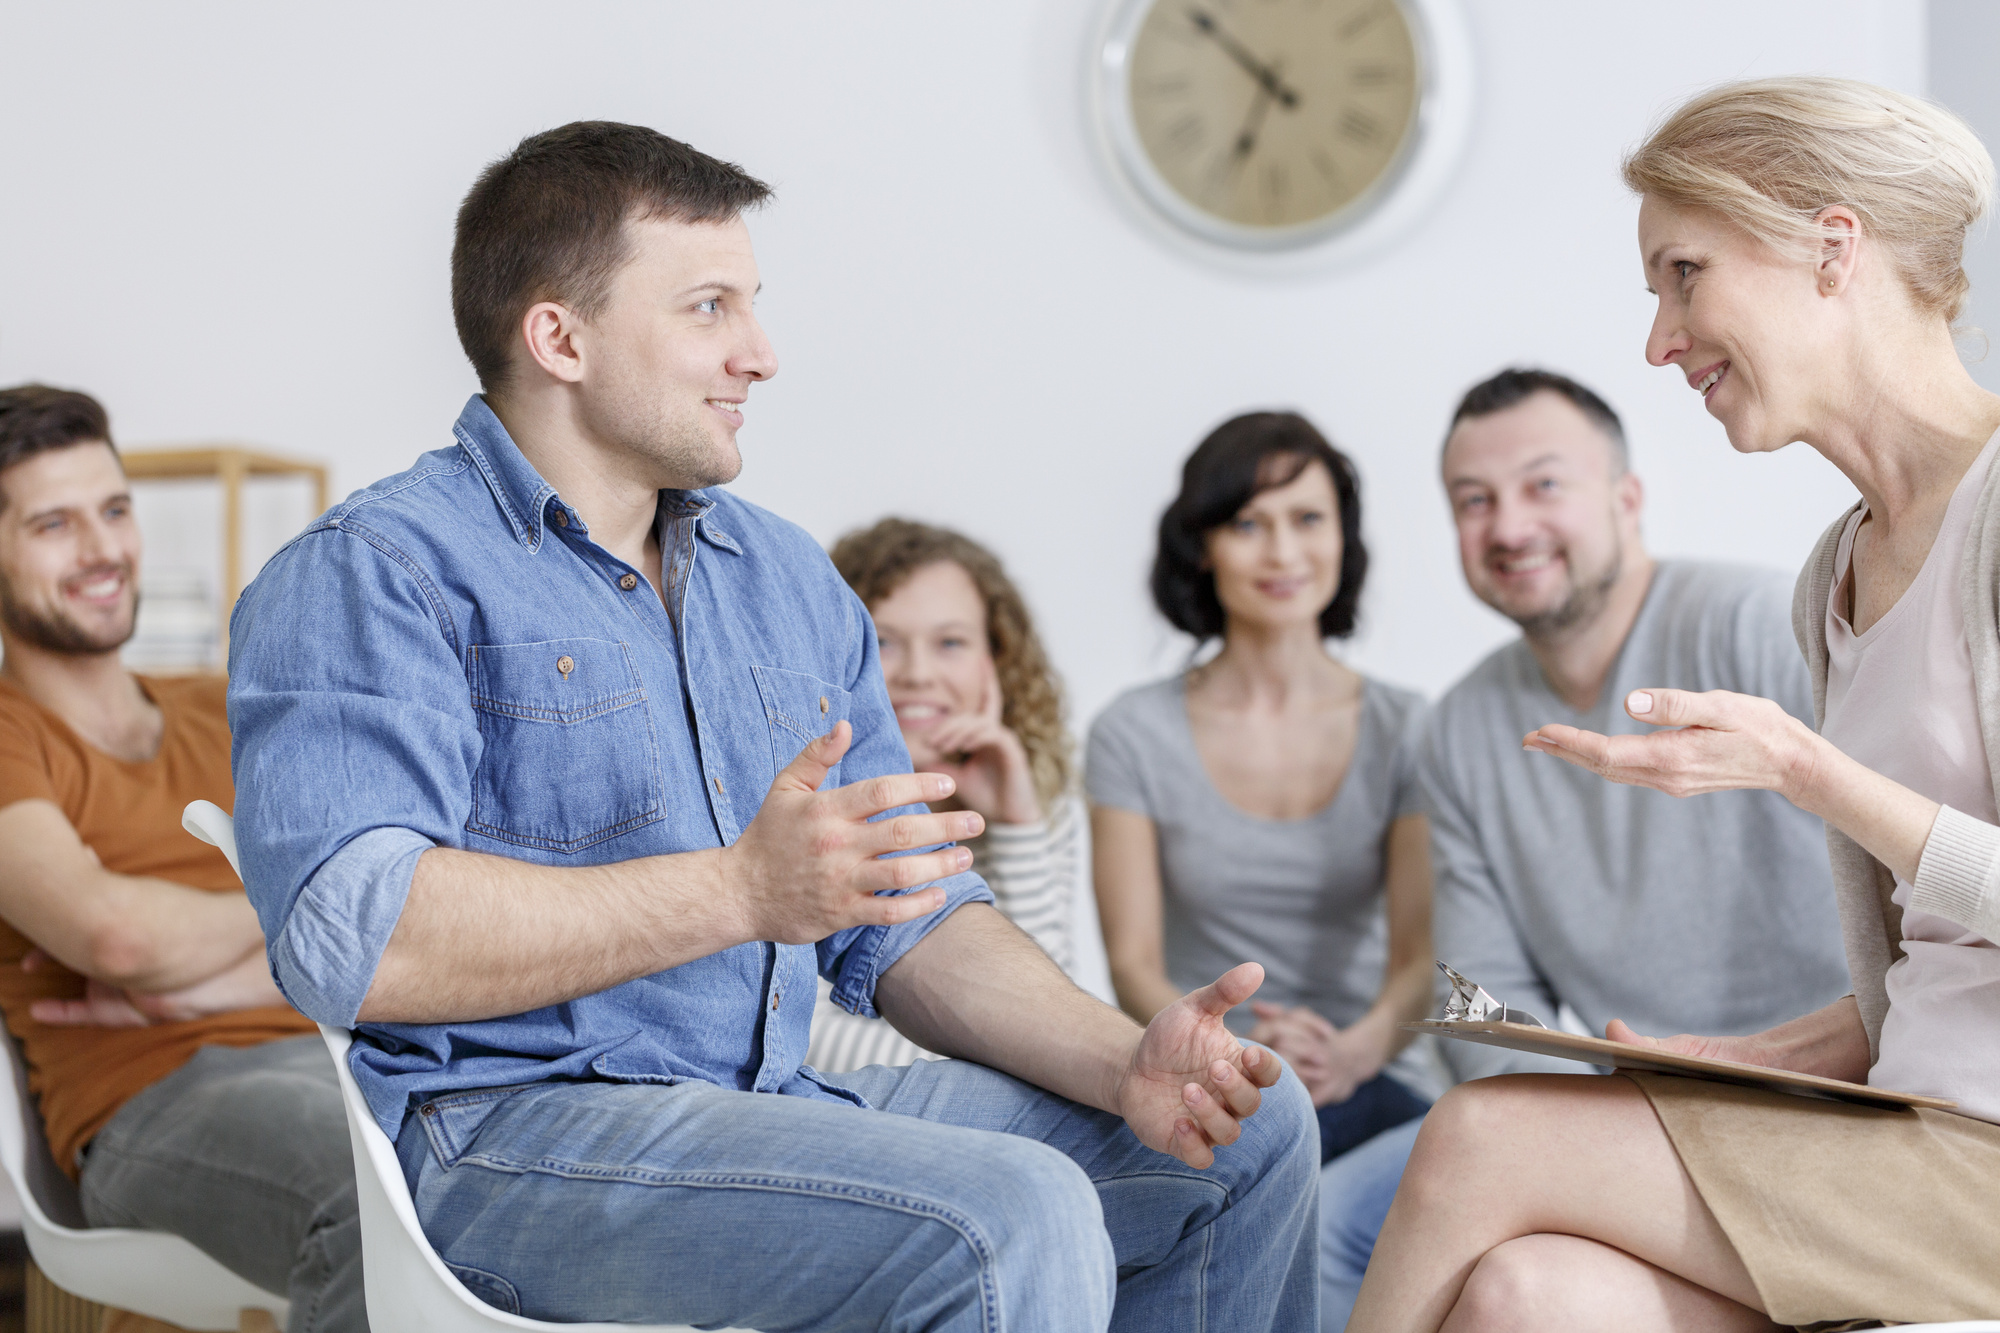 What Can You Expect from Alcohol Intervention Services?